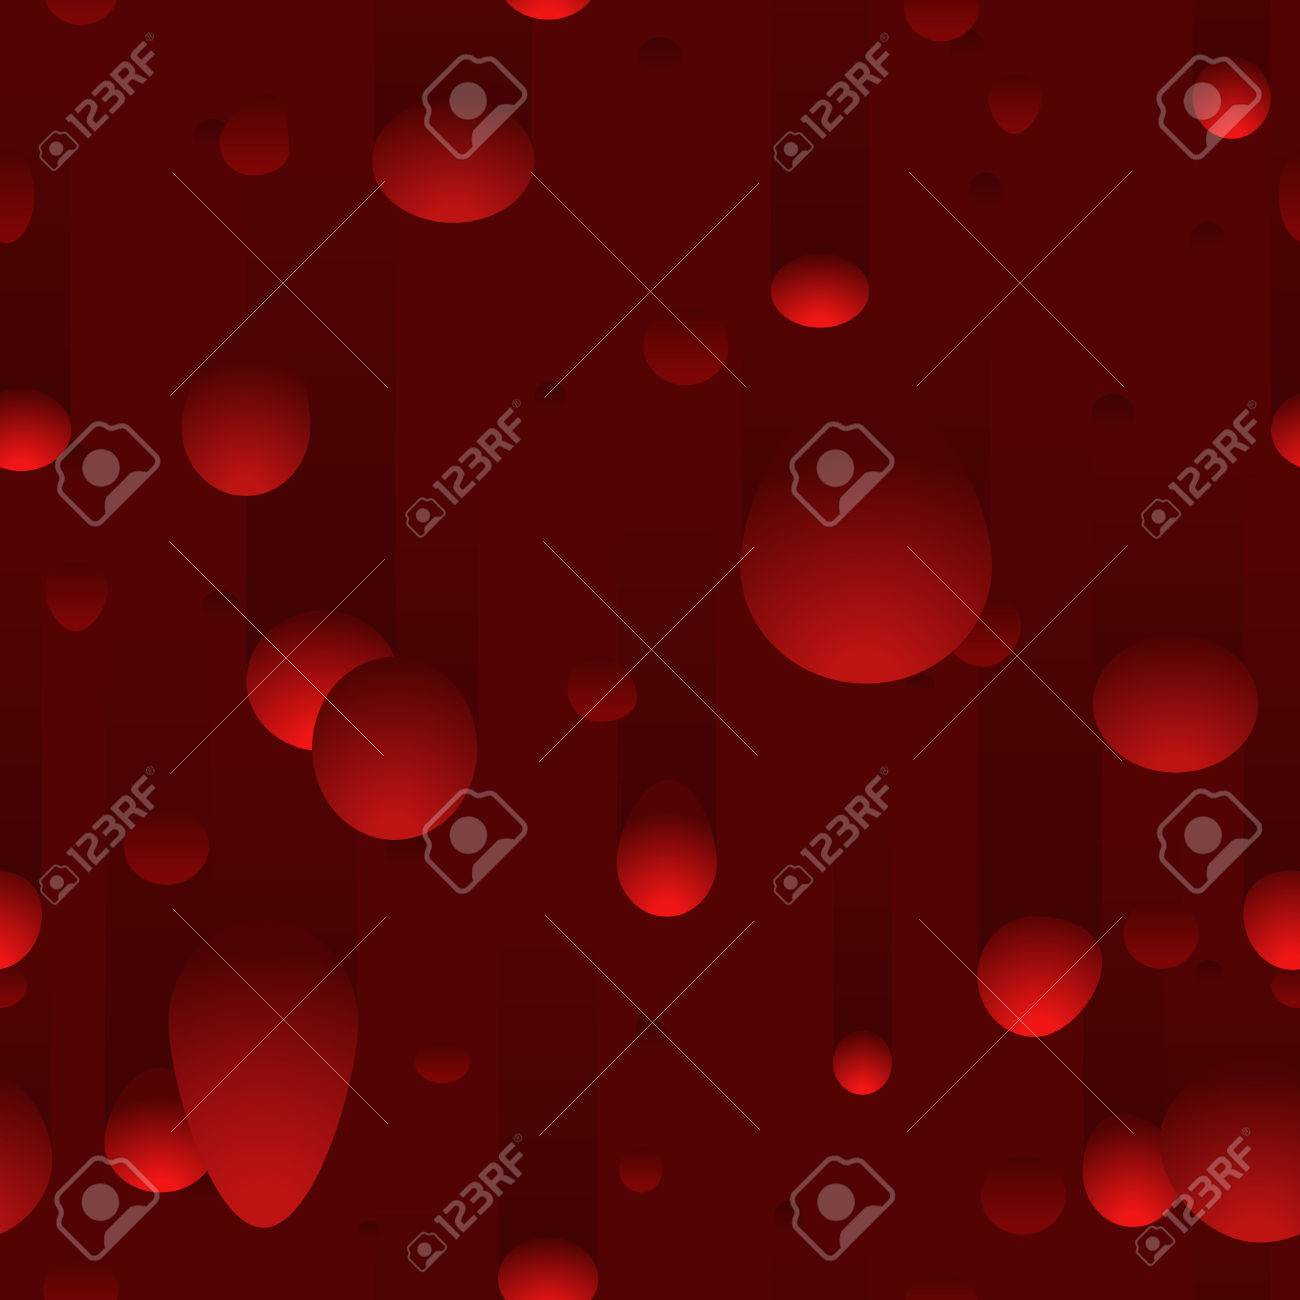 Lava lamp vector - Lava Lamps Lava Lamp Seamless Background